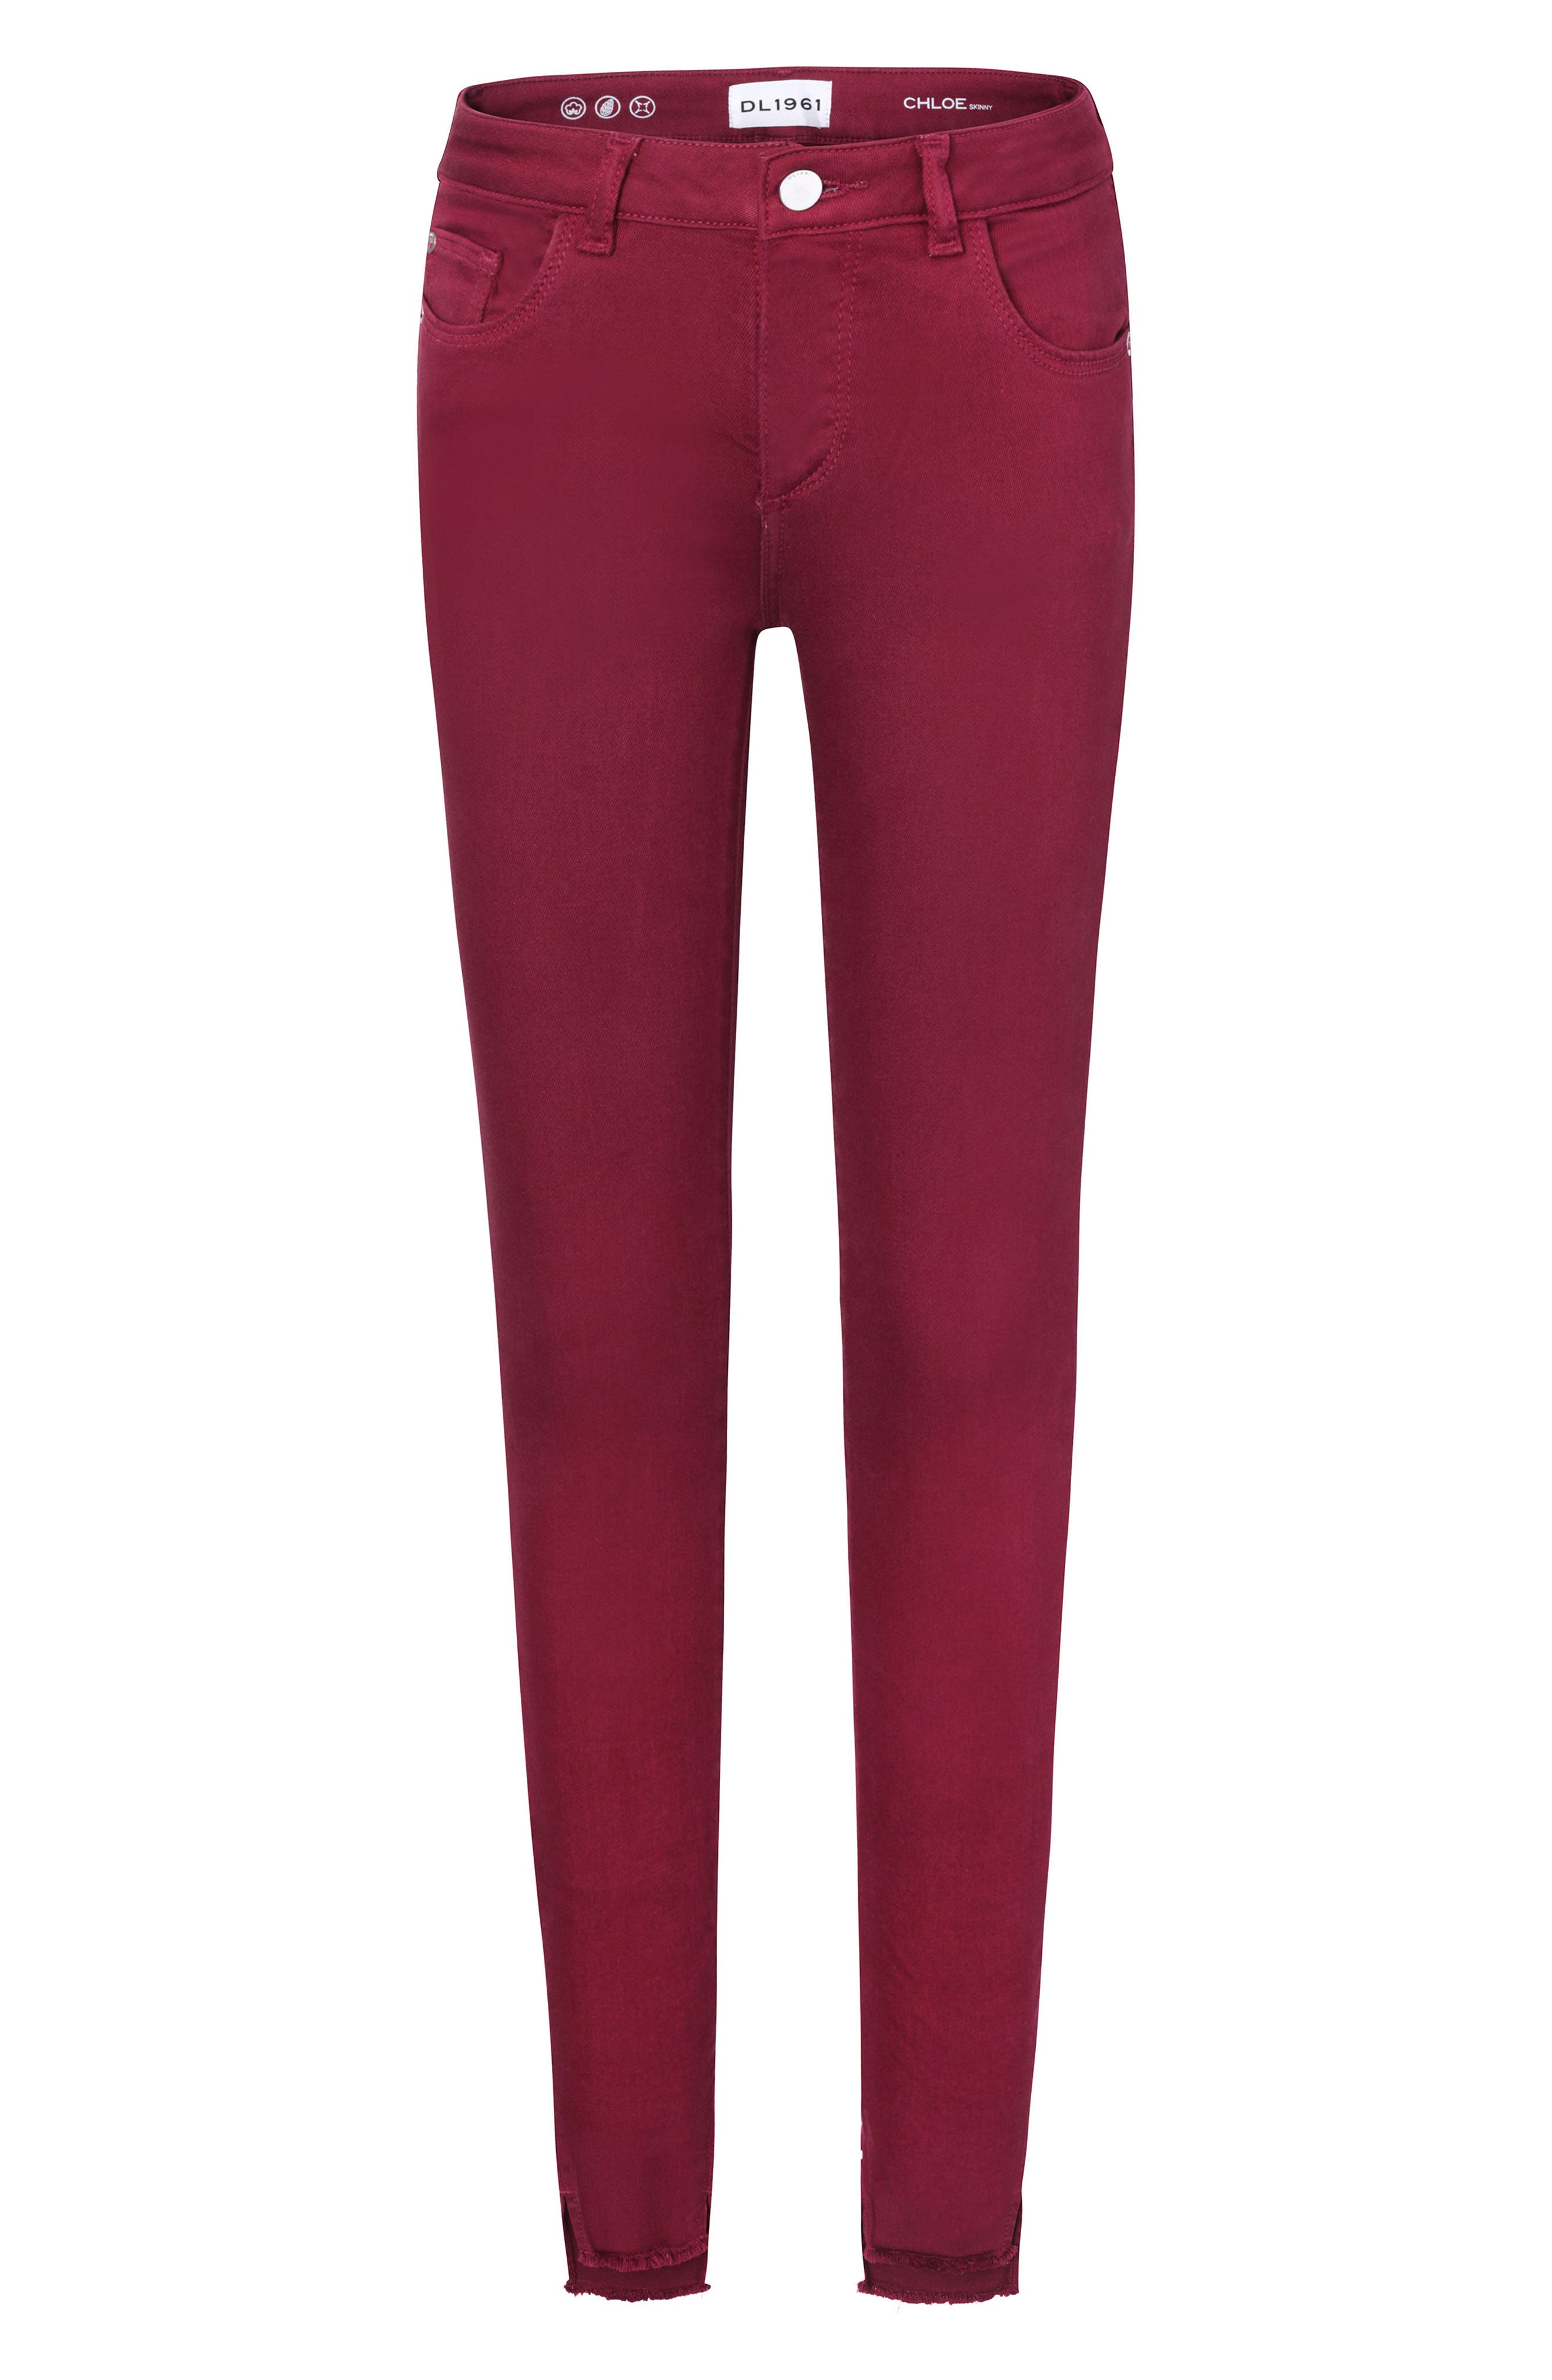 Chloe Skinny Jeans,                             Main thumbnail 1, color,                             VERY BERRY